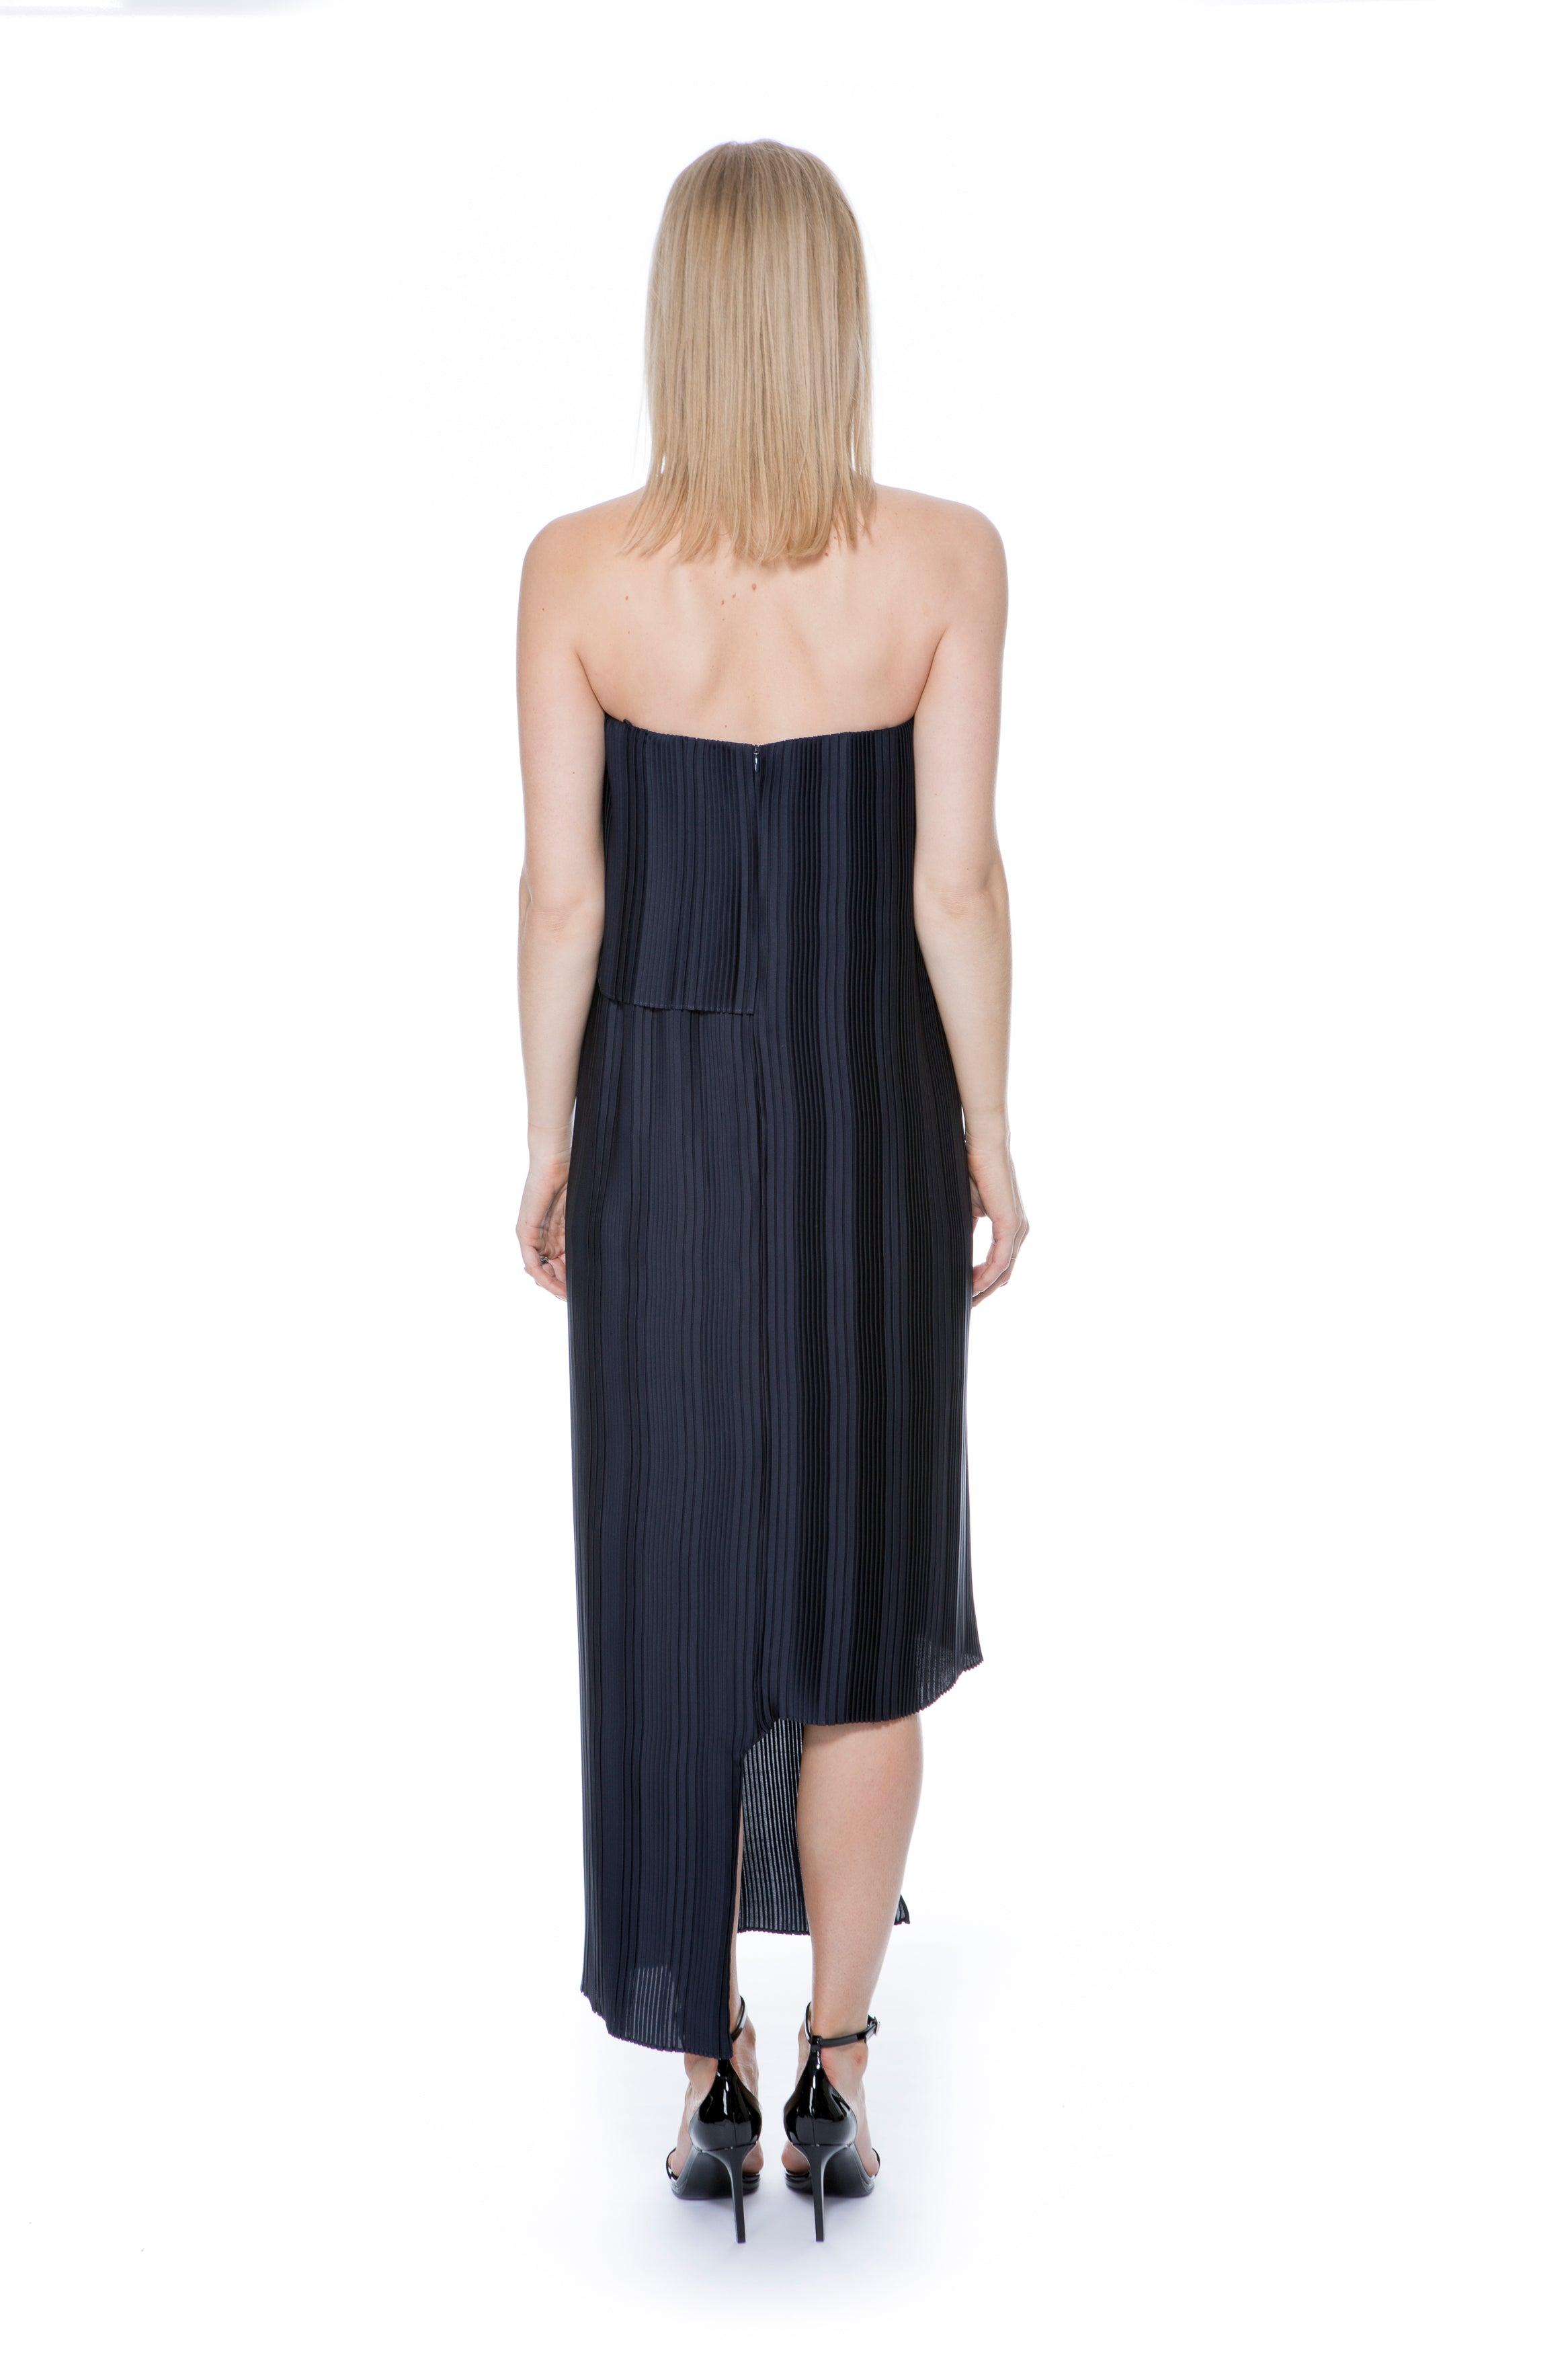 STRAPLESS NAVY PLEAT LAYERED DRESS